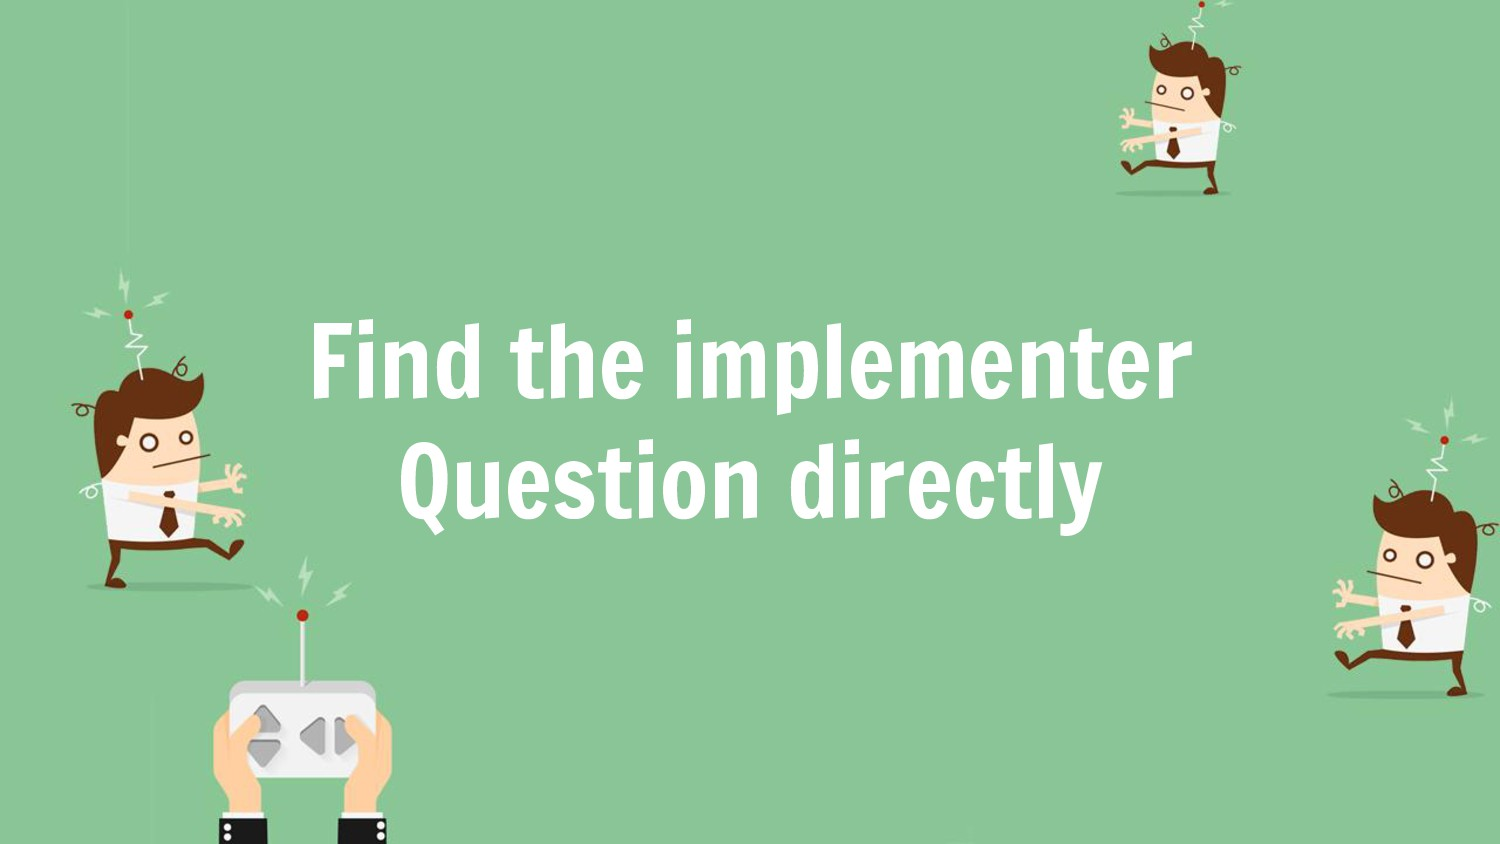 Find the implementer Question directly